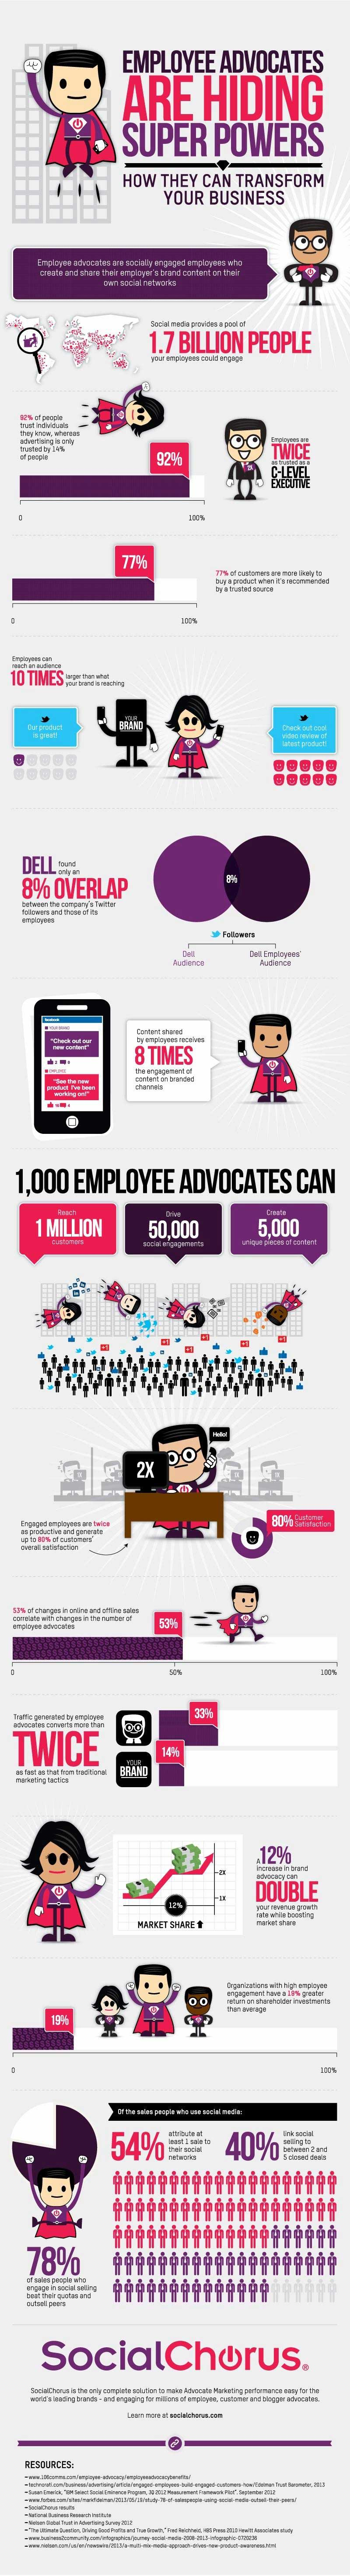 employee-advocate-superpowers-infographic